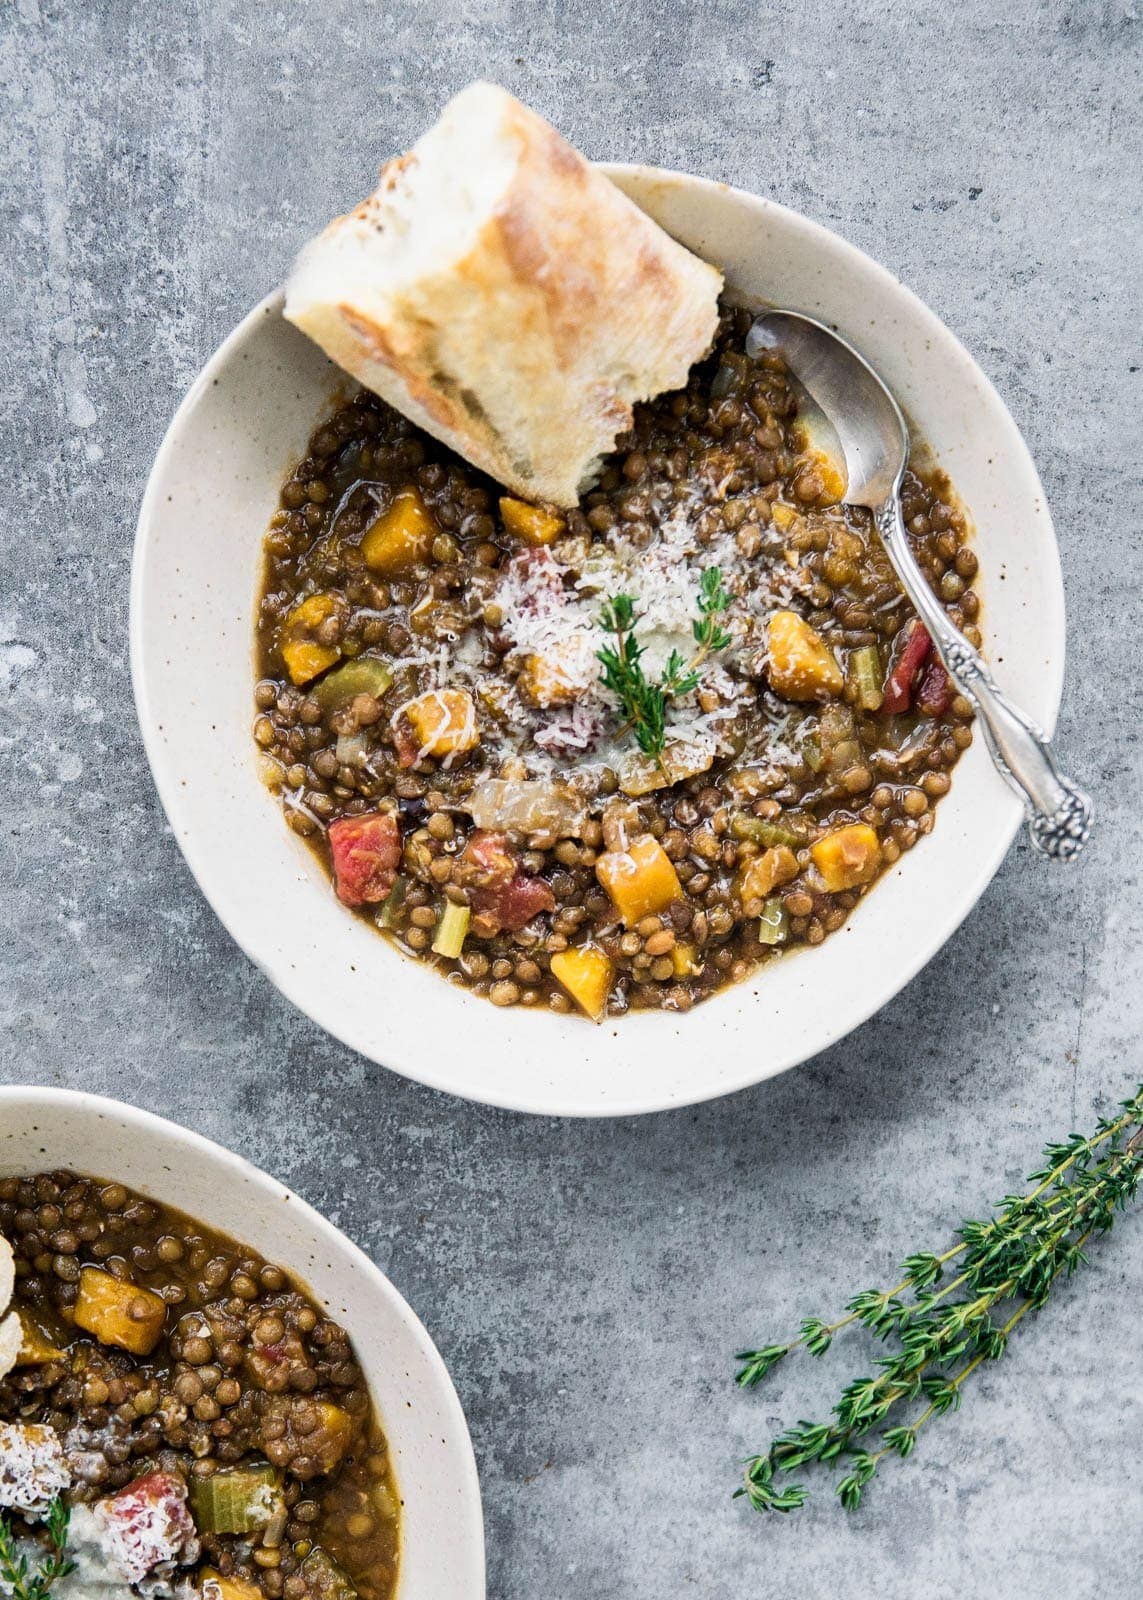 This hearty Butternut Squash Lentil Stew is simple enough for a weeknight dinner, but flavorful enough to serve to guests all winter long.